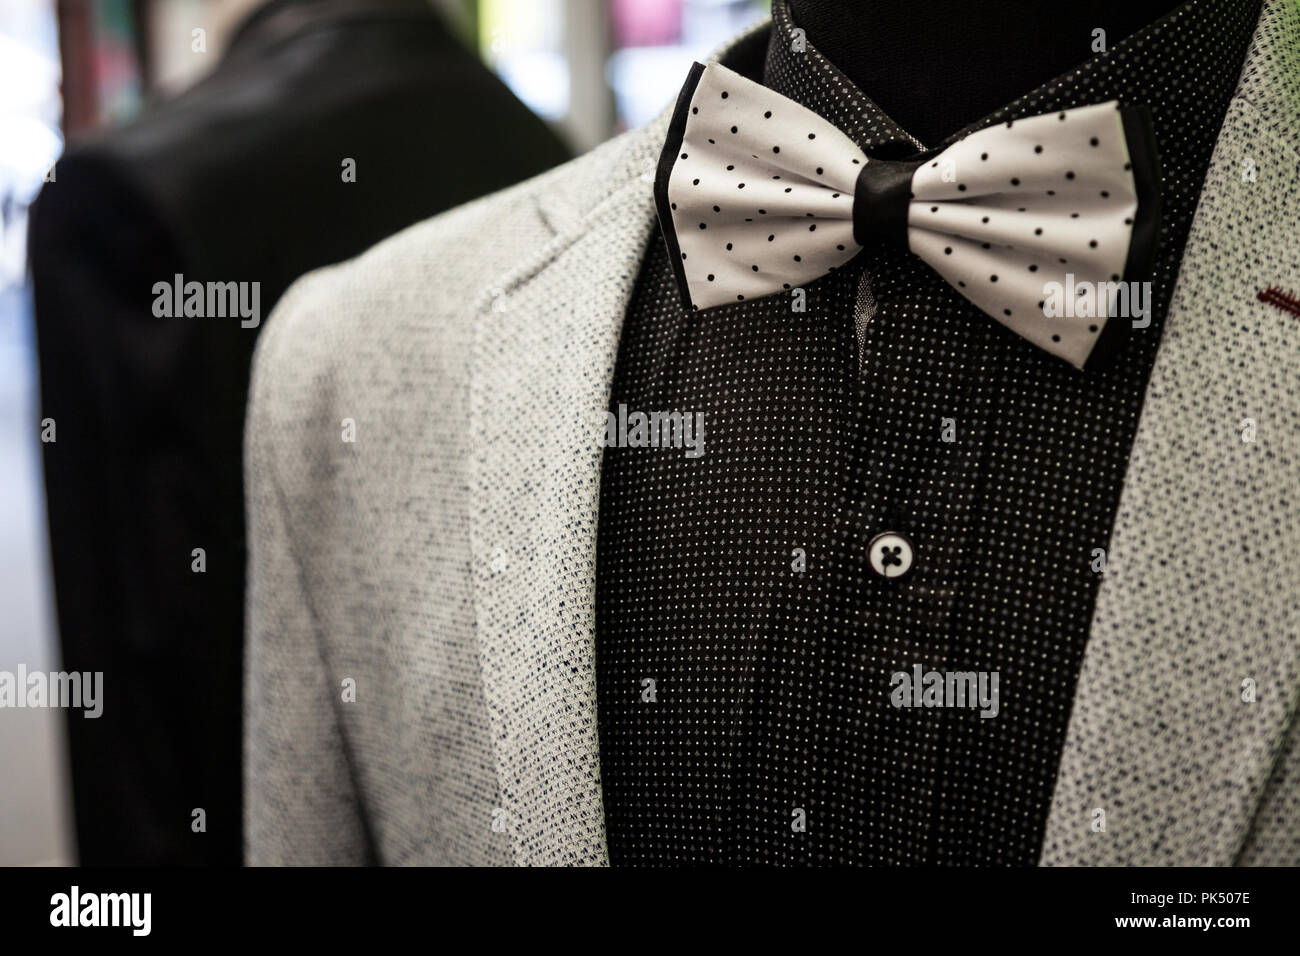 382fde39dc02 White bowtie with black dots, on display with a black shirt and a white  wool suit jacket. Bow ties are a symbol of elegance and style, currently  back